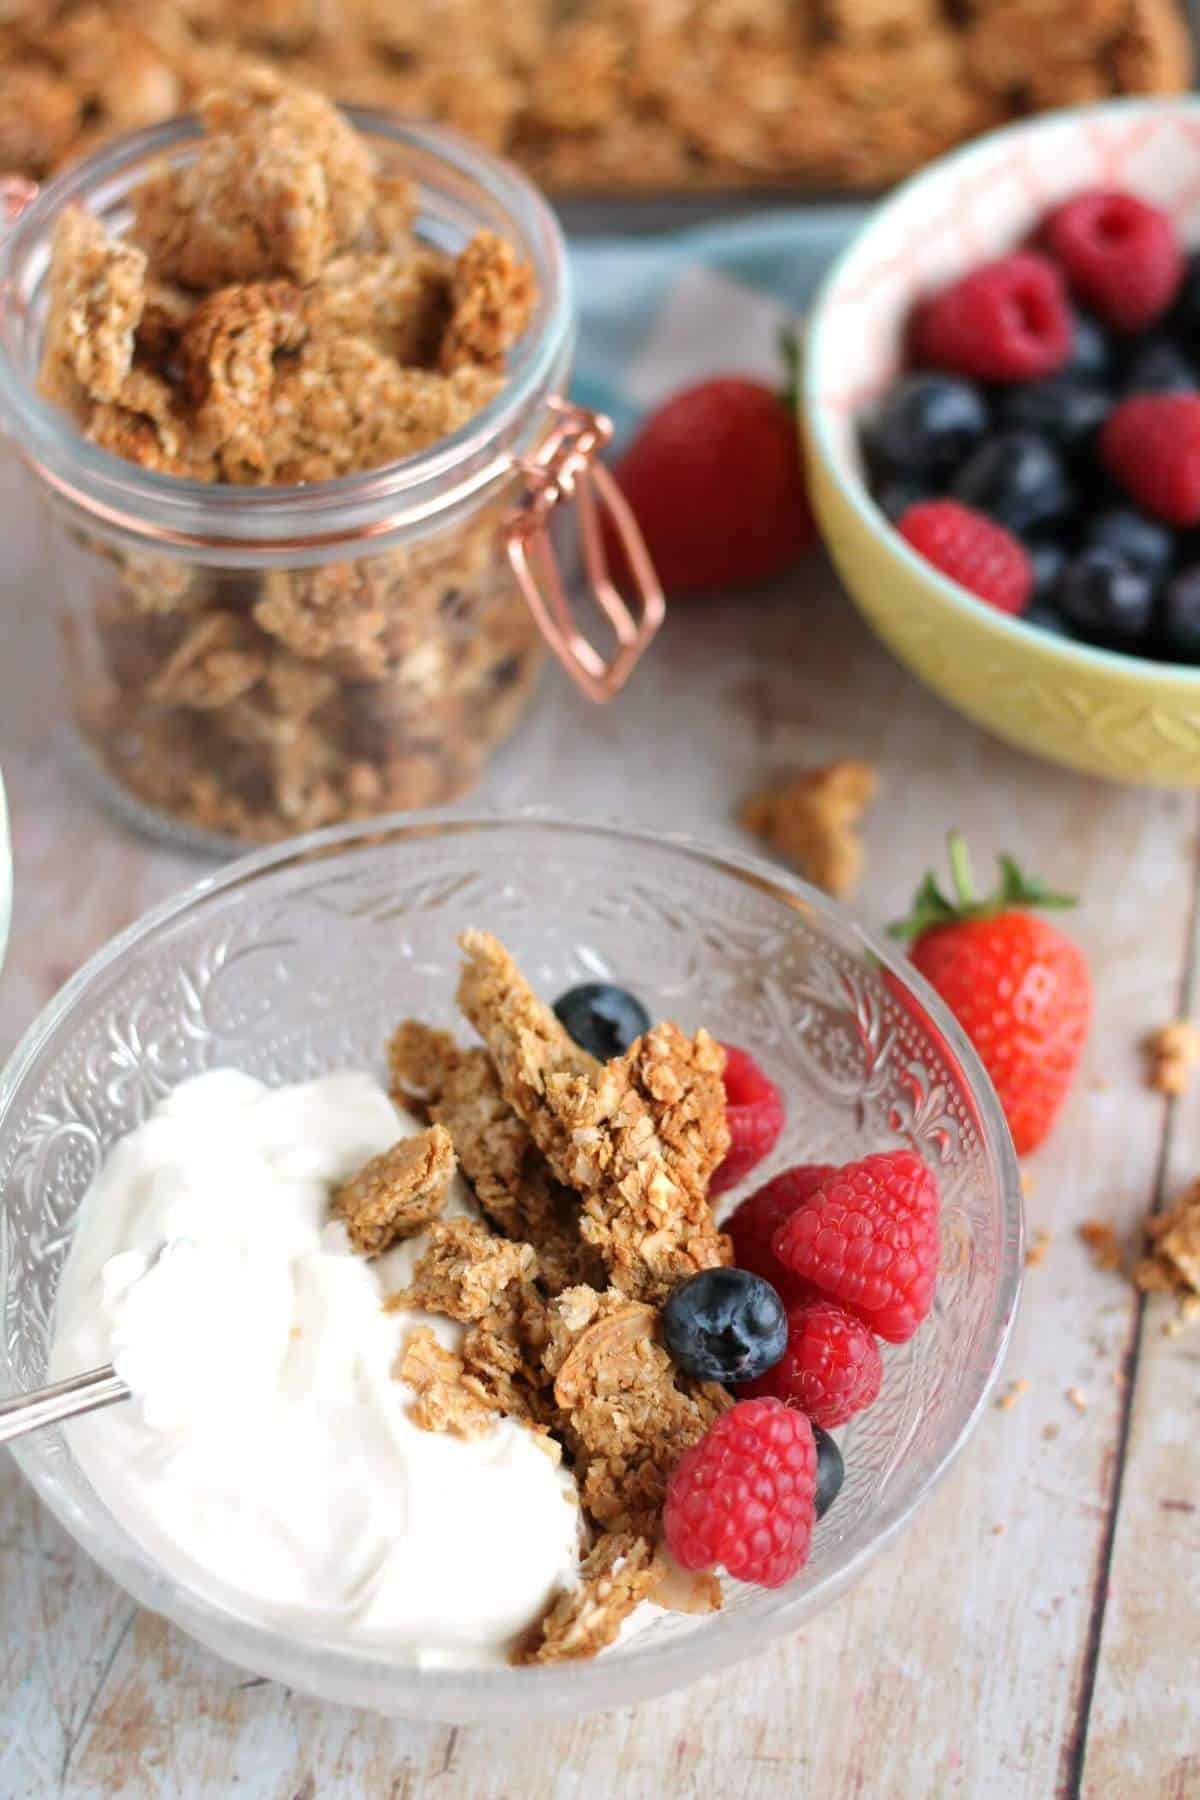 A bowl of homemade crunchy peanut butter granola with yogurt and berries.